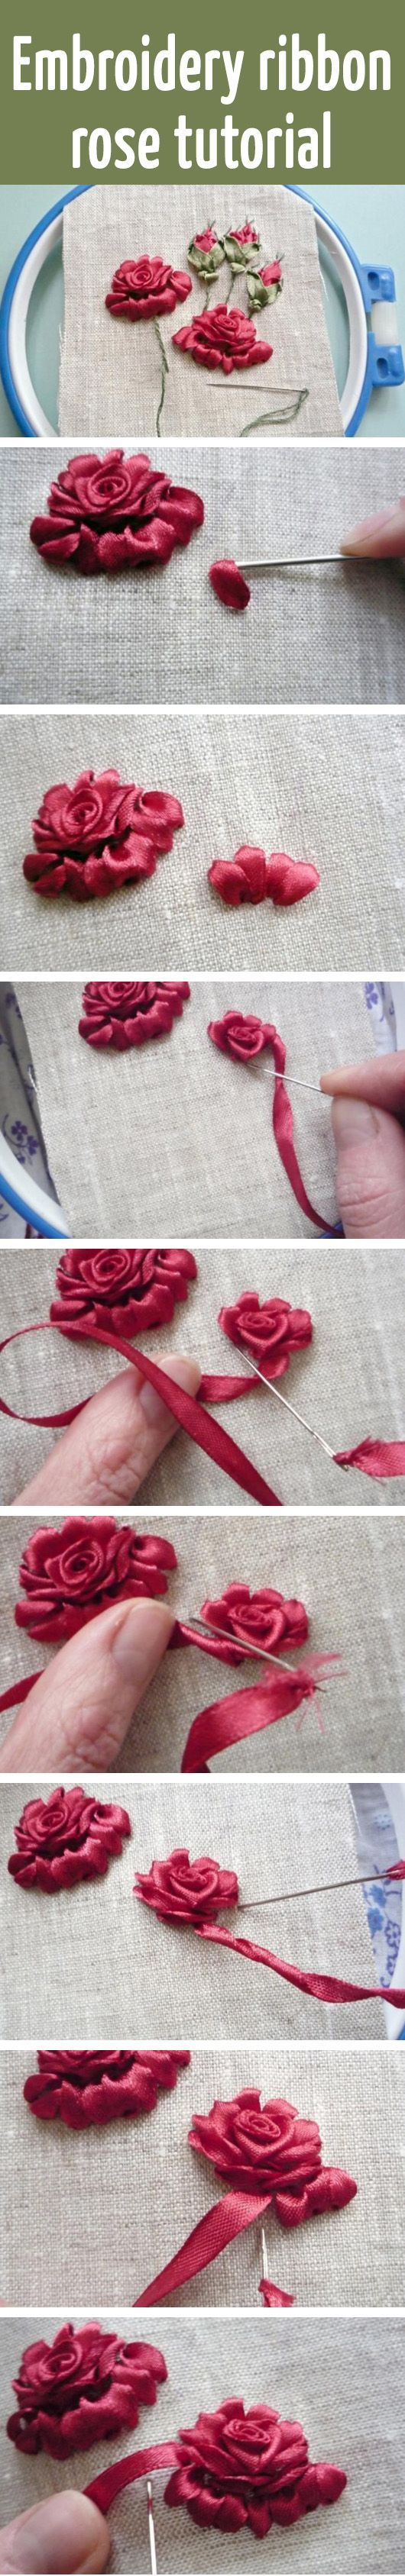 1000+ Ideas About Ribbon Embroidery Tutorial On Pinterest | Silk Ribbon Embroidery Silk Ribbon ...